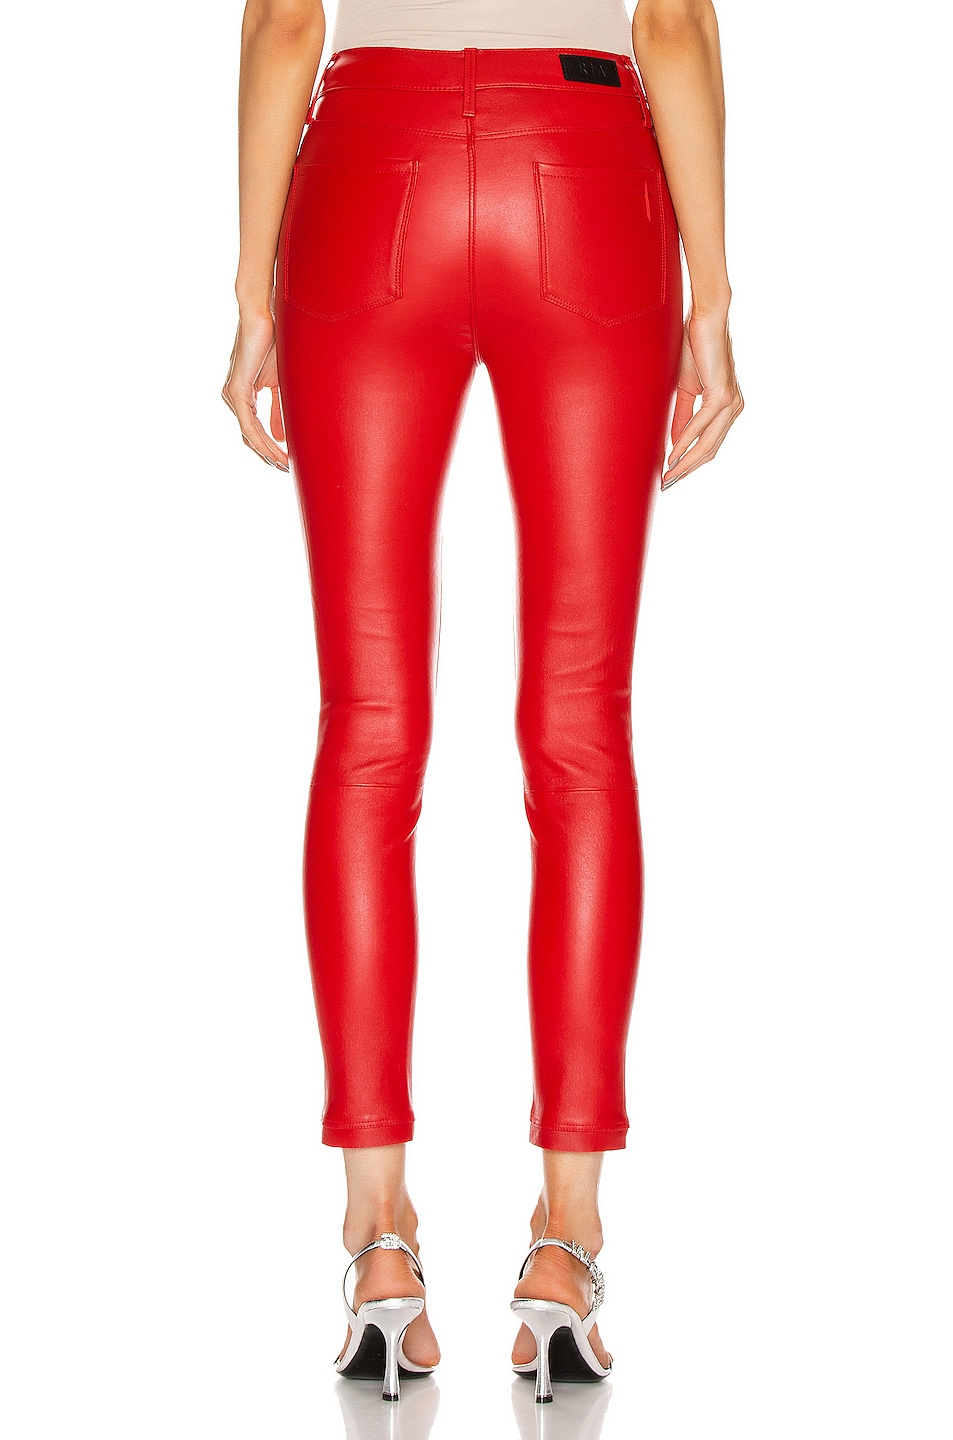 Image 3 of RtA Madrid Skinny Pant in Red Cherry